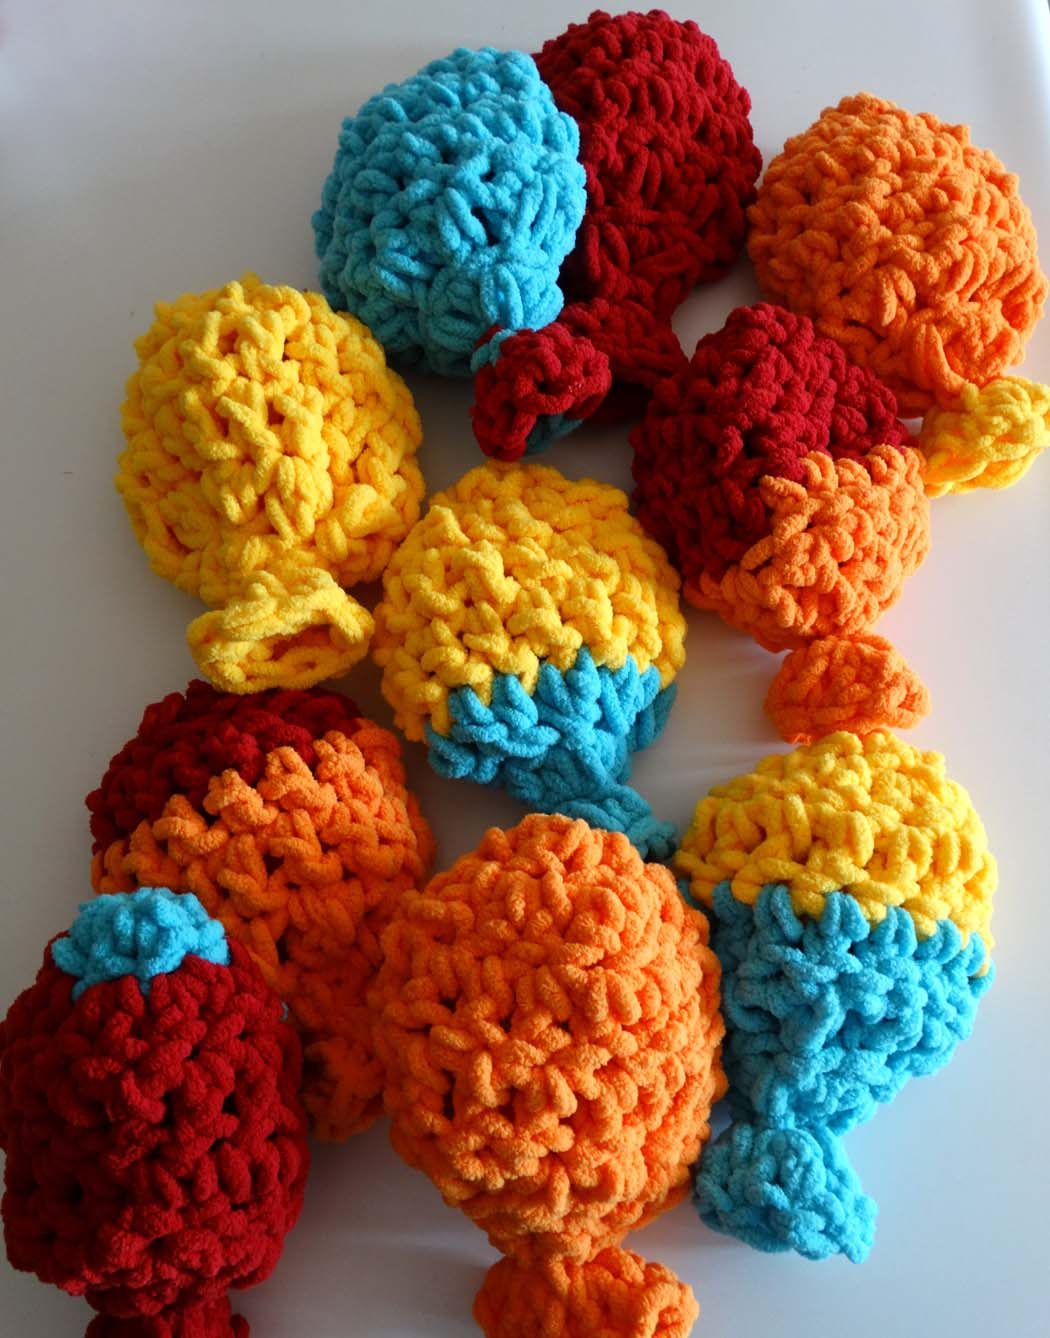 Reusable Crochet Water Balloons